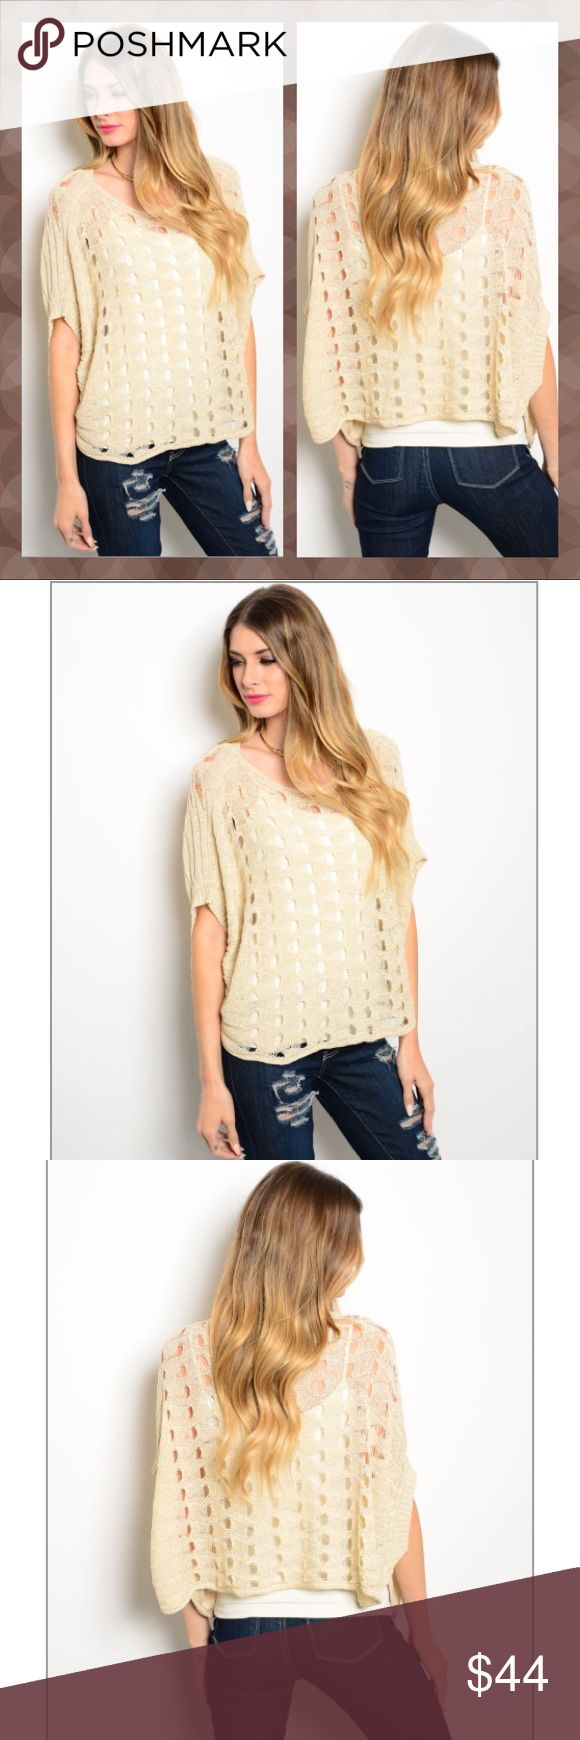 COMING SOON! Cream Crochet Batwing Sweater This open Knit top features short batwing sleeves, a rounded neckline, and a relaxed fit. 50% acrylic, 50% polyester. Sweaters